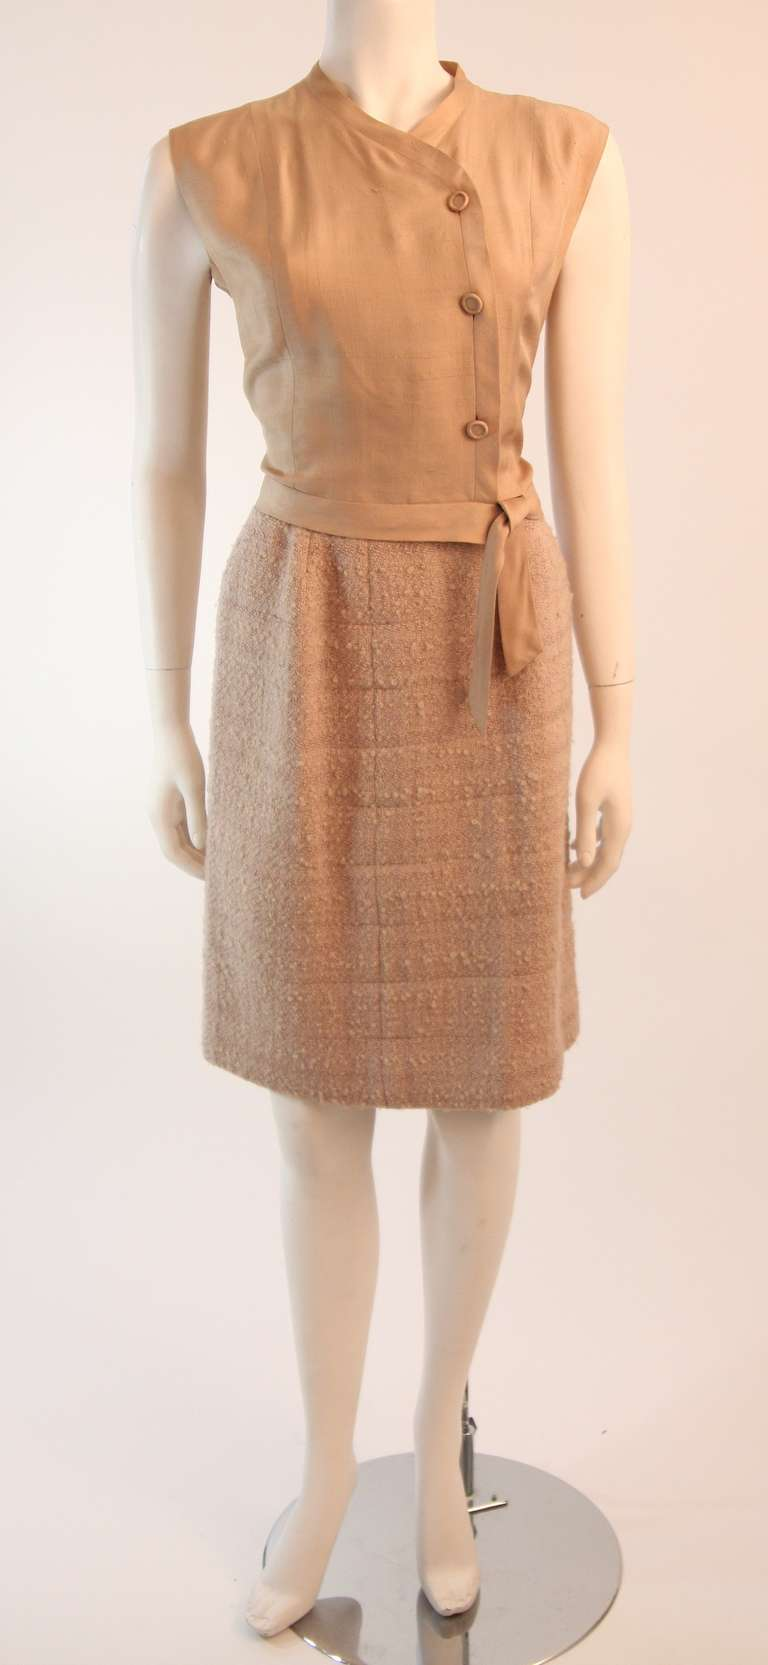 1960's Attributed to Chanel Couture Cream Boucle 3 Piece Tweed Suit 9